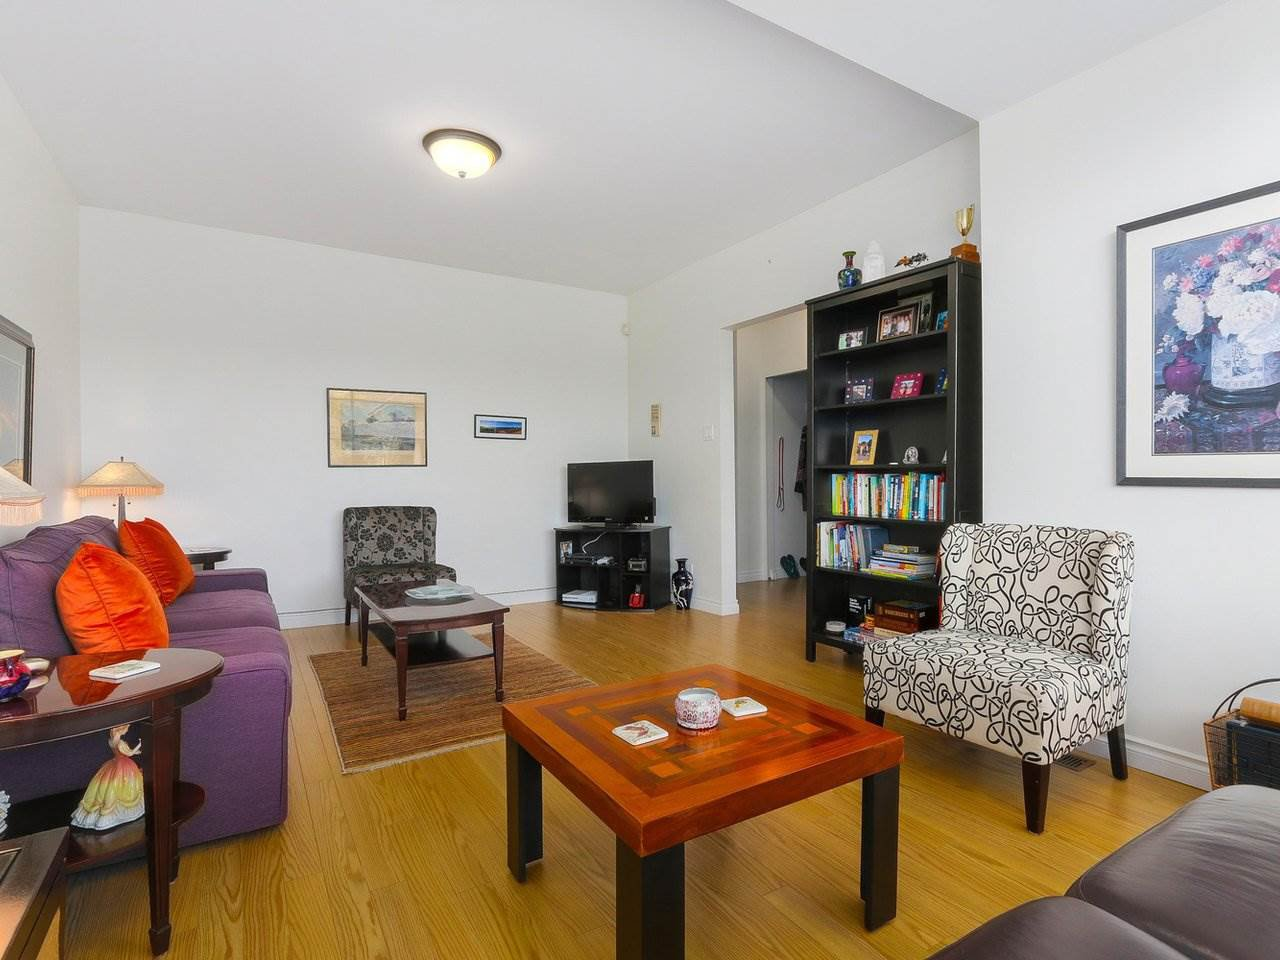 """Photo 3: Photos: 2610 W 10TH Avenue in Vancouver: Kitsilano House for sale in """"Kitsilano"""" (Vancouver West)  : MLS®# R2471992"""